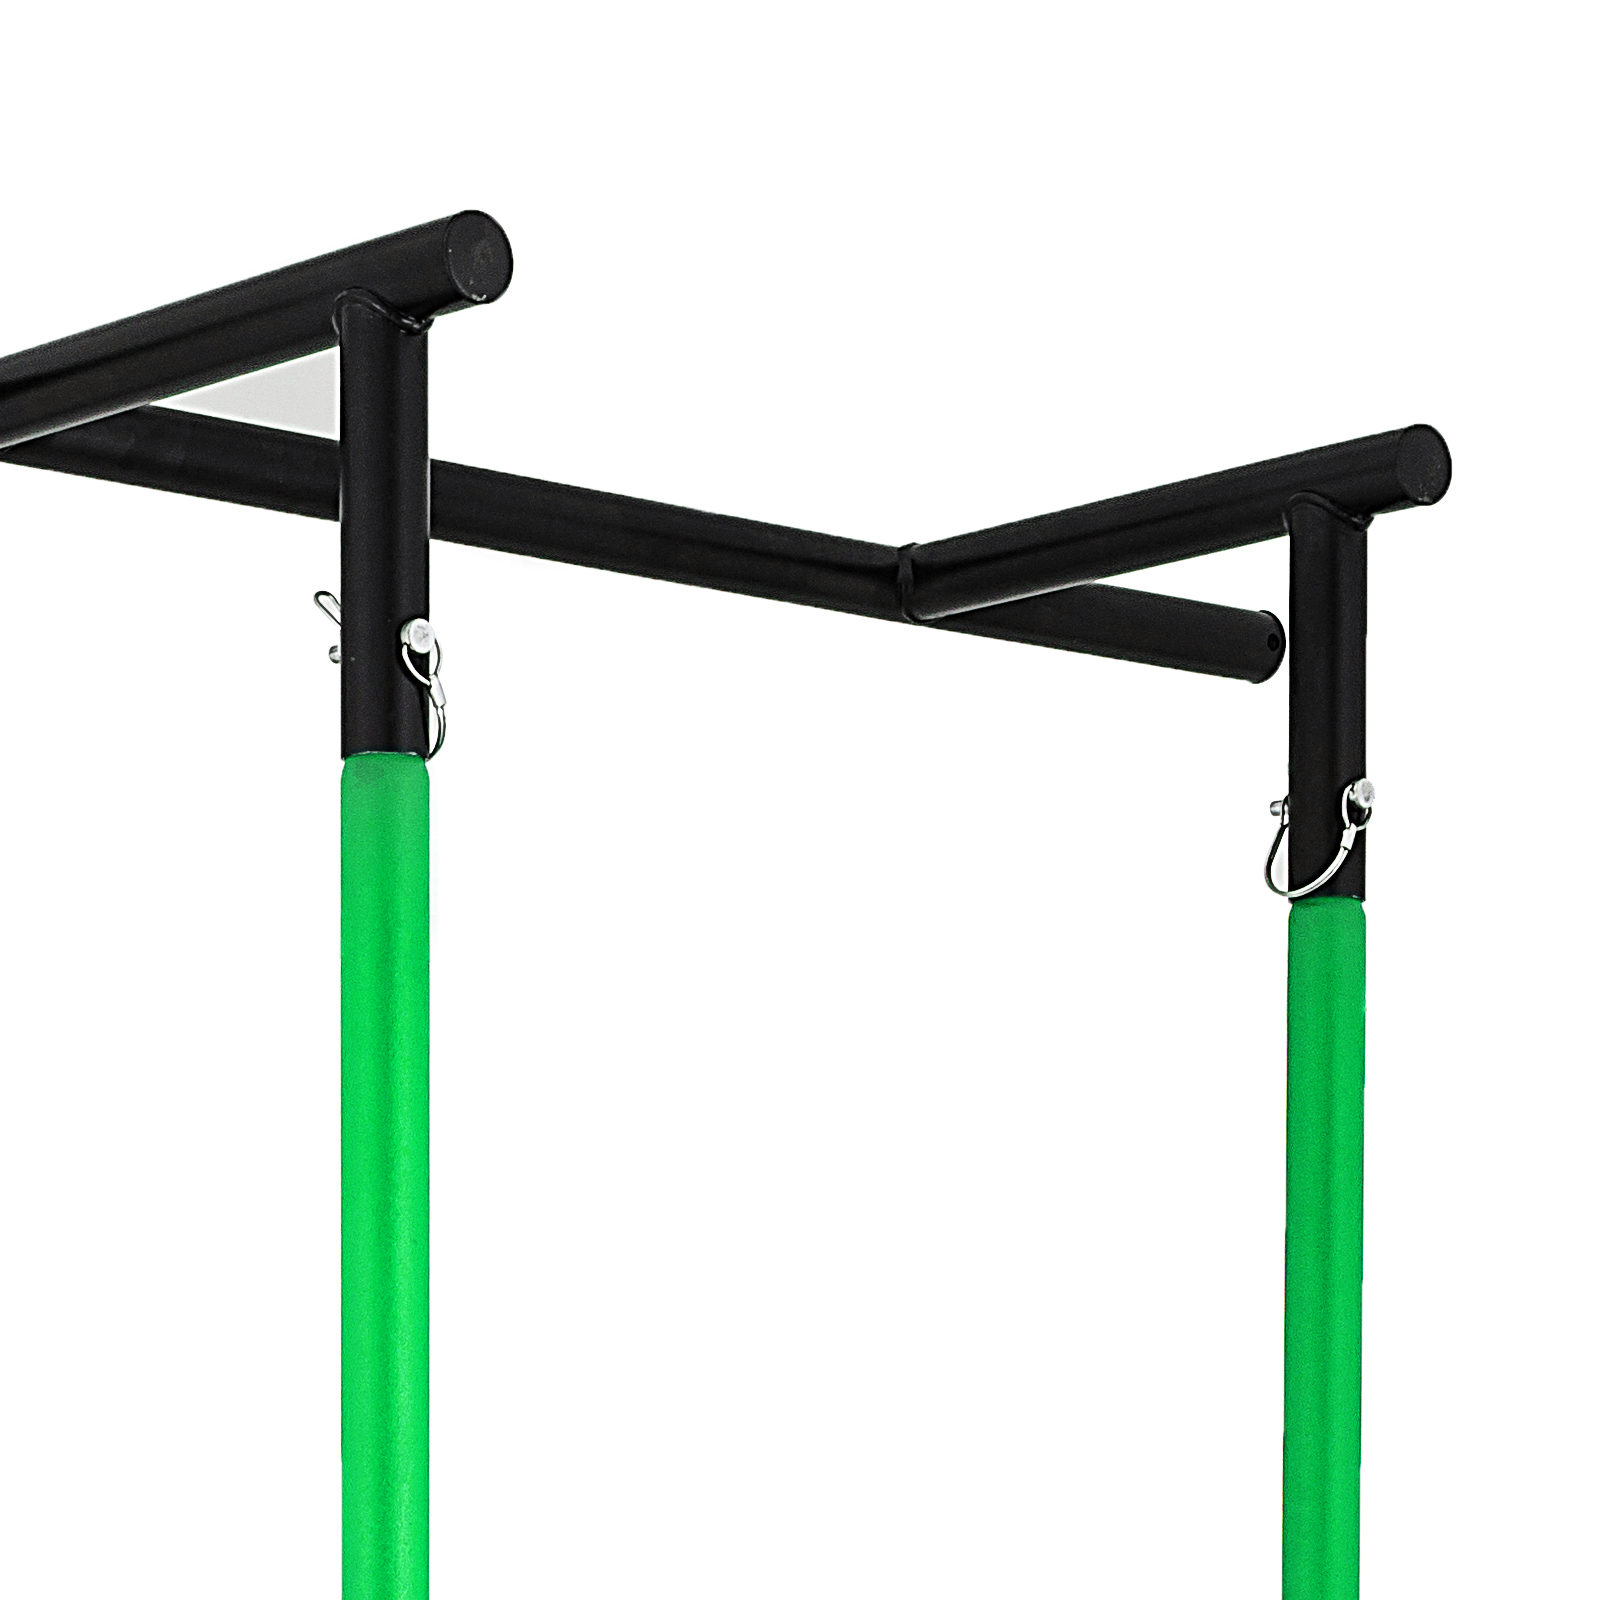 Portable-Power-Tower-for-Home-Gym-Workout-With-Dip-Station-And-Chin-Pull-Up-Bar thumbnail 58